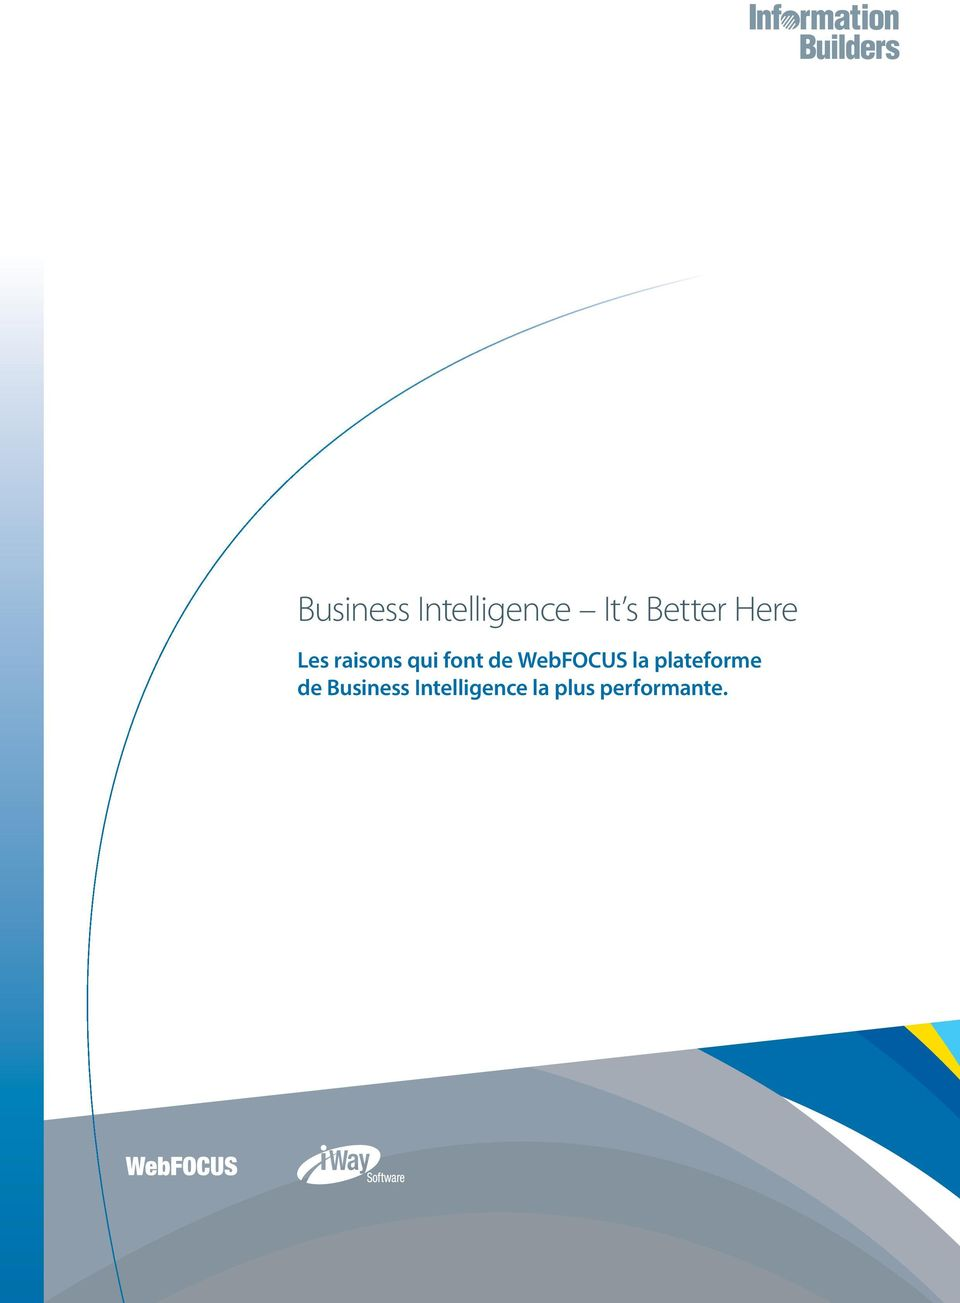 plateforme de Business Intelligence la